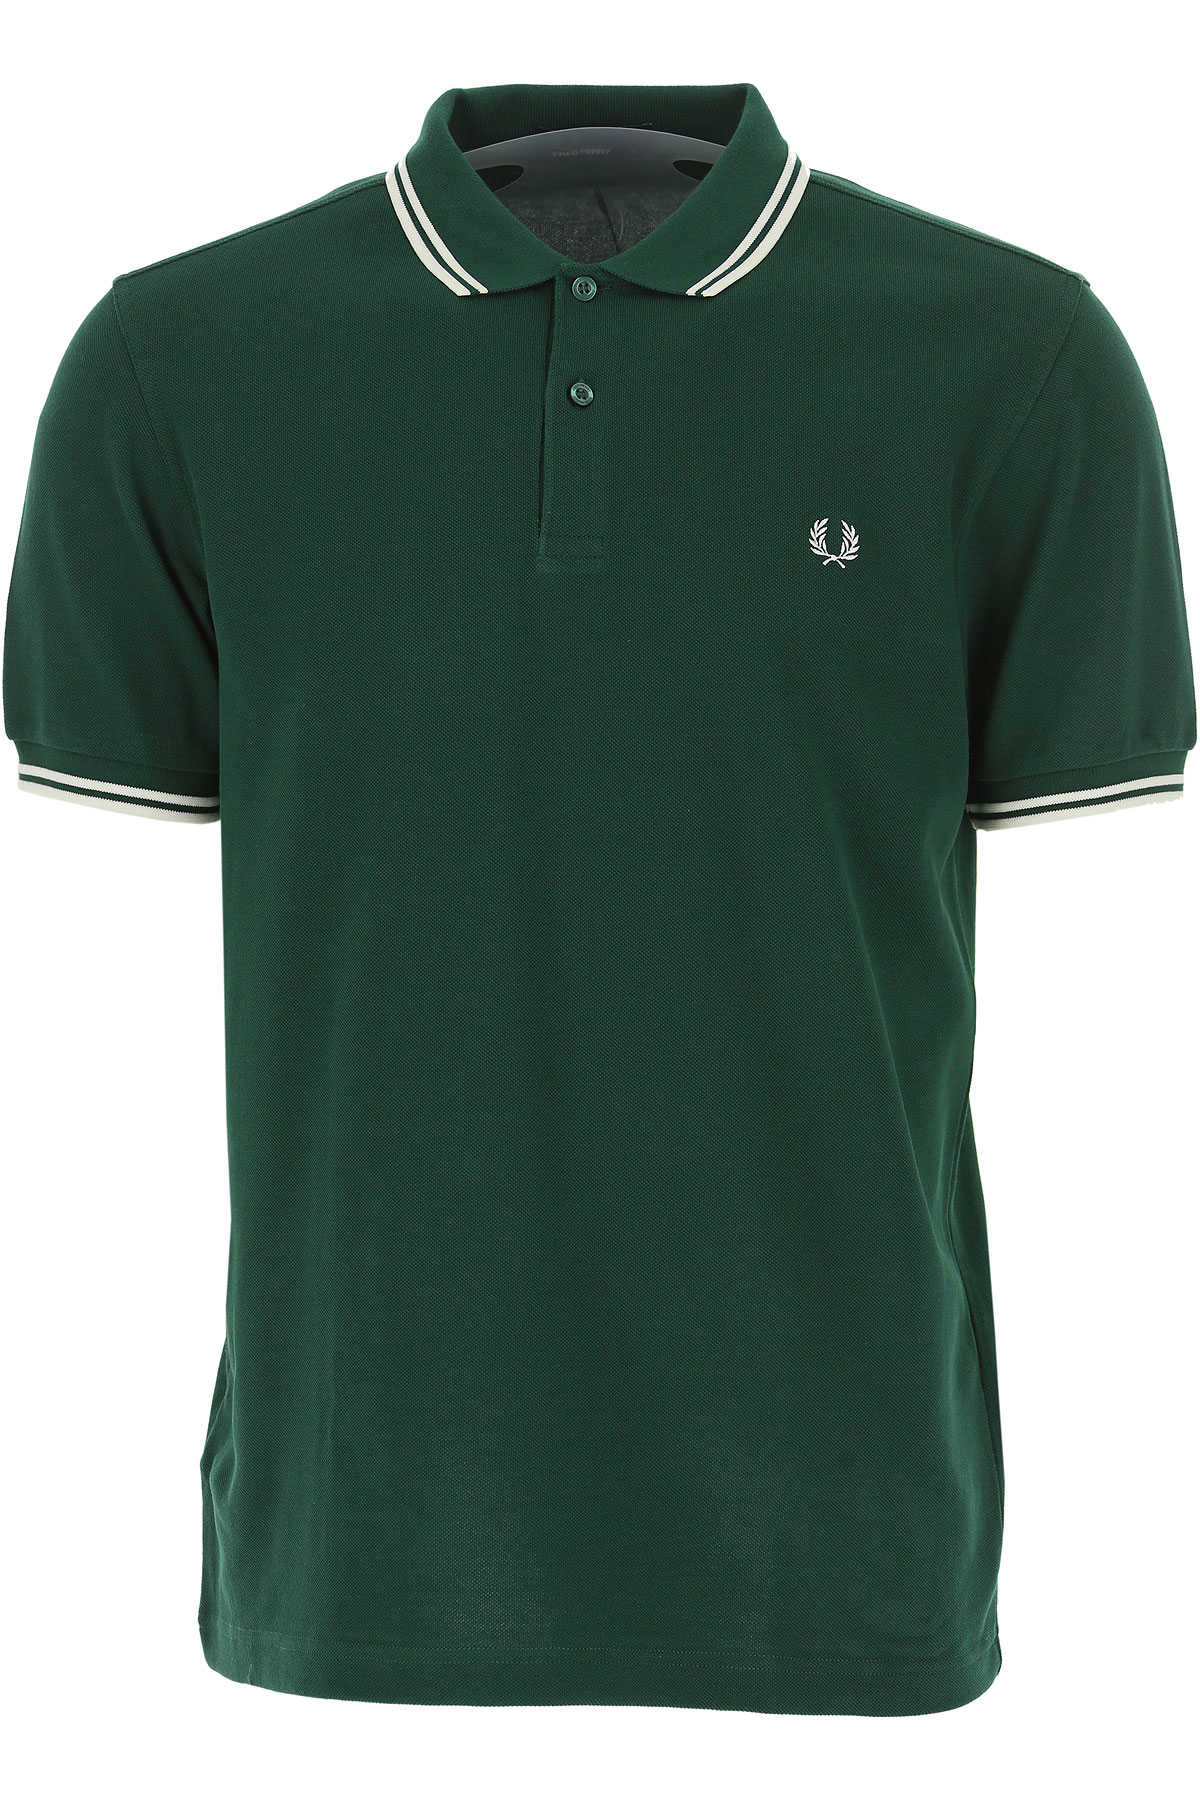 Fred Perry Polo Shirt for Men Dark Green USA - GOOFASH